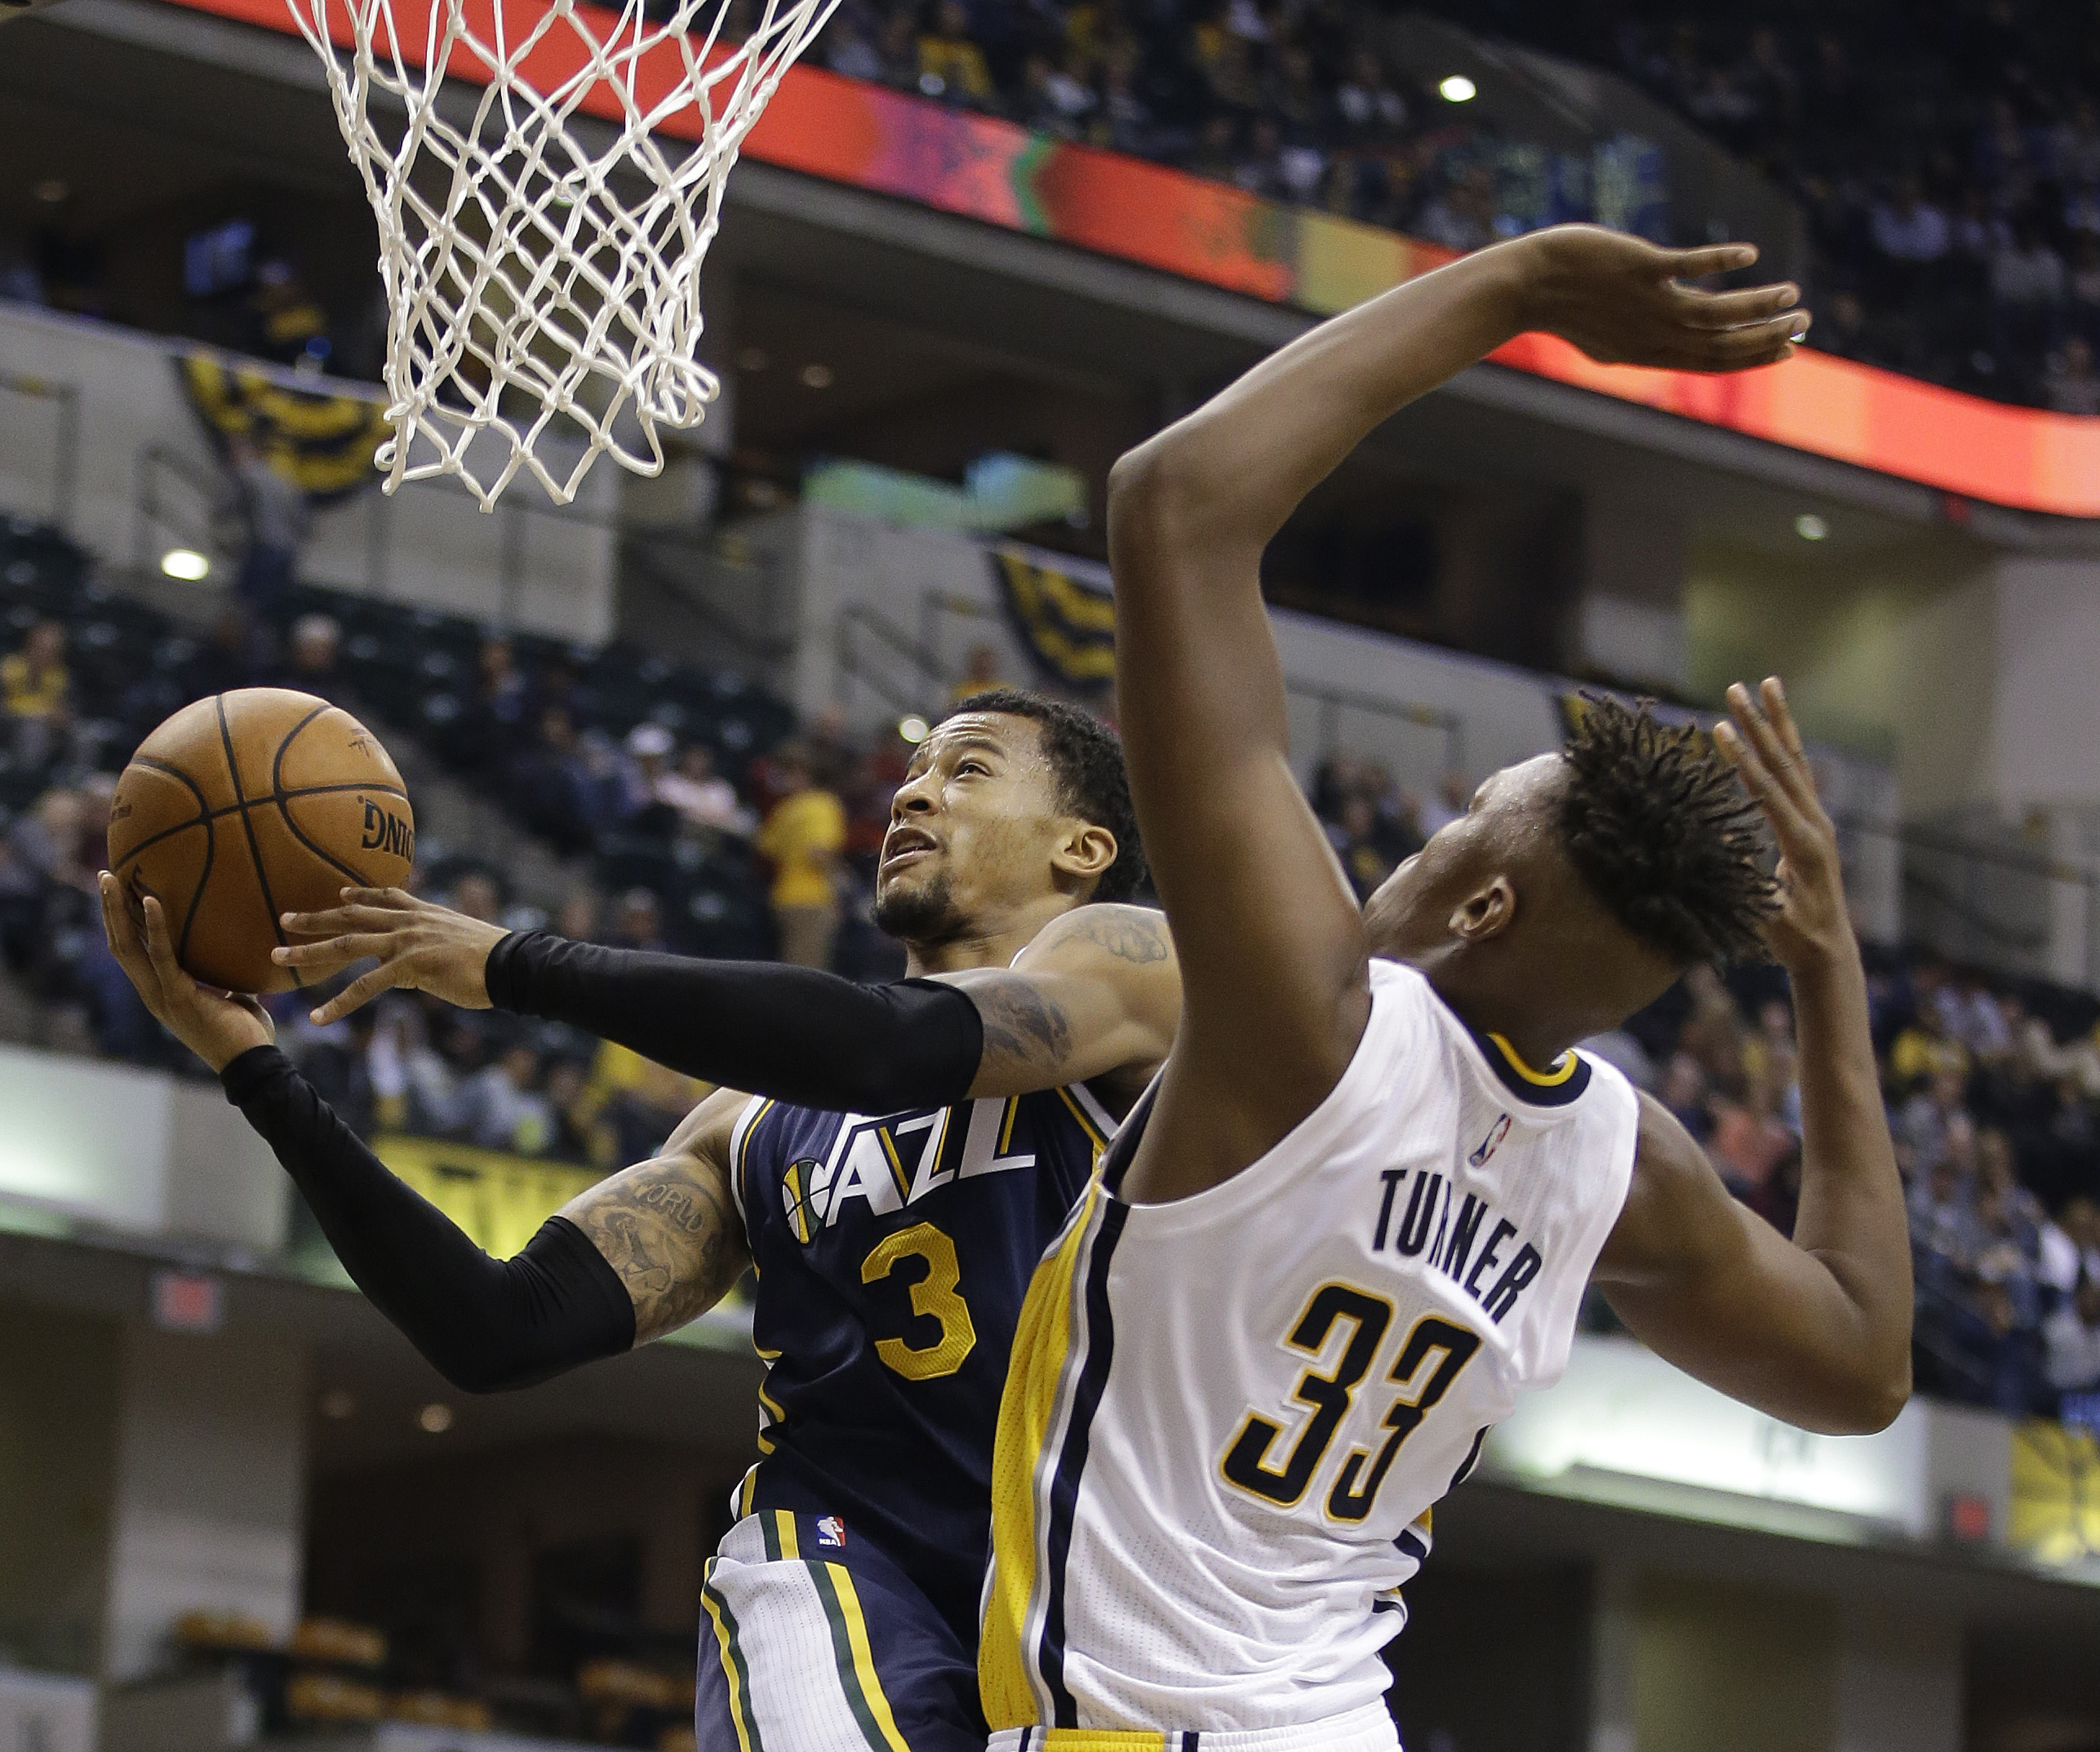 Utah Jazz's Trey Burke shoots against Indiana Pacers' Myles Turner during the second half of the game.  The Jazz beat the Pacers 97-76. (AP Photo/Darron Cummings)